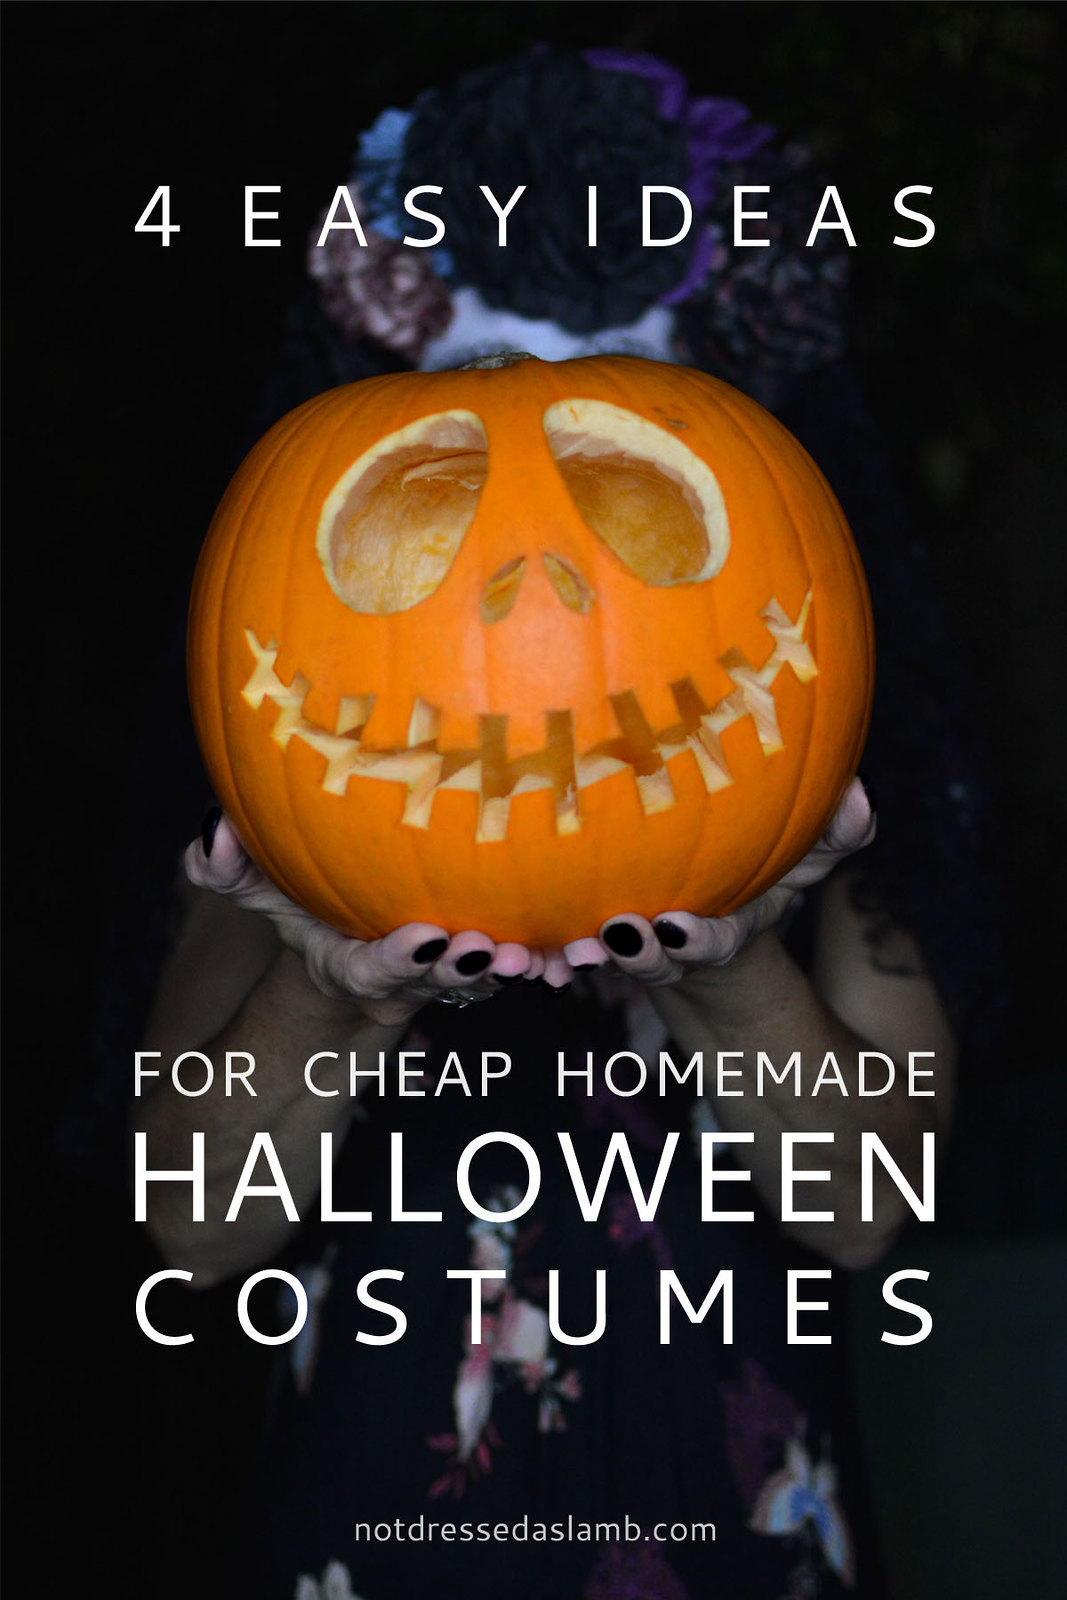 4 Easy Ideas for Cheap, Homemade Halloween Costumes | Not Dressed As Lamb